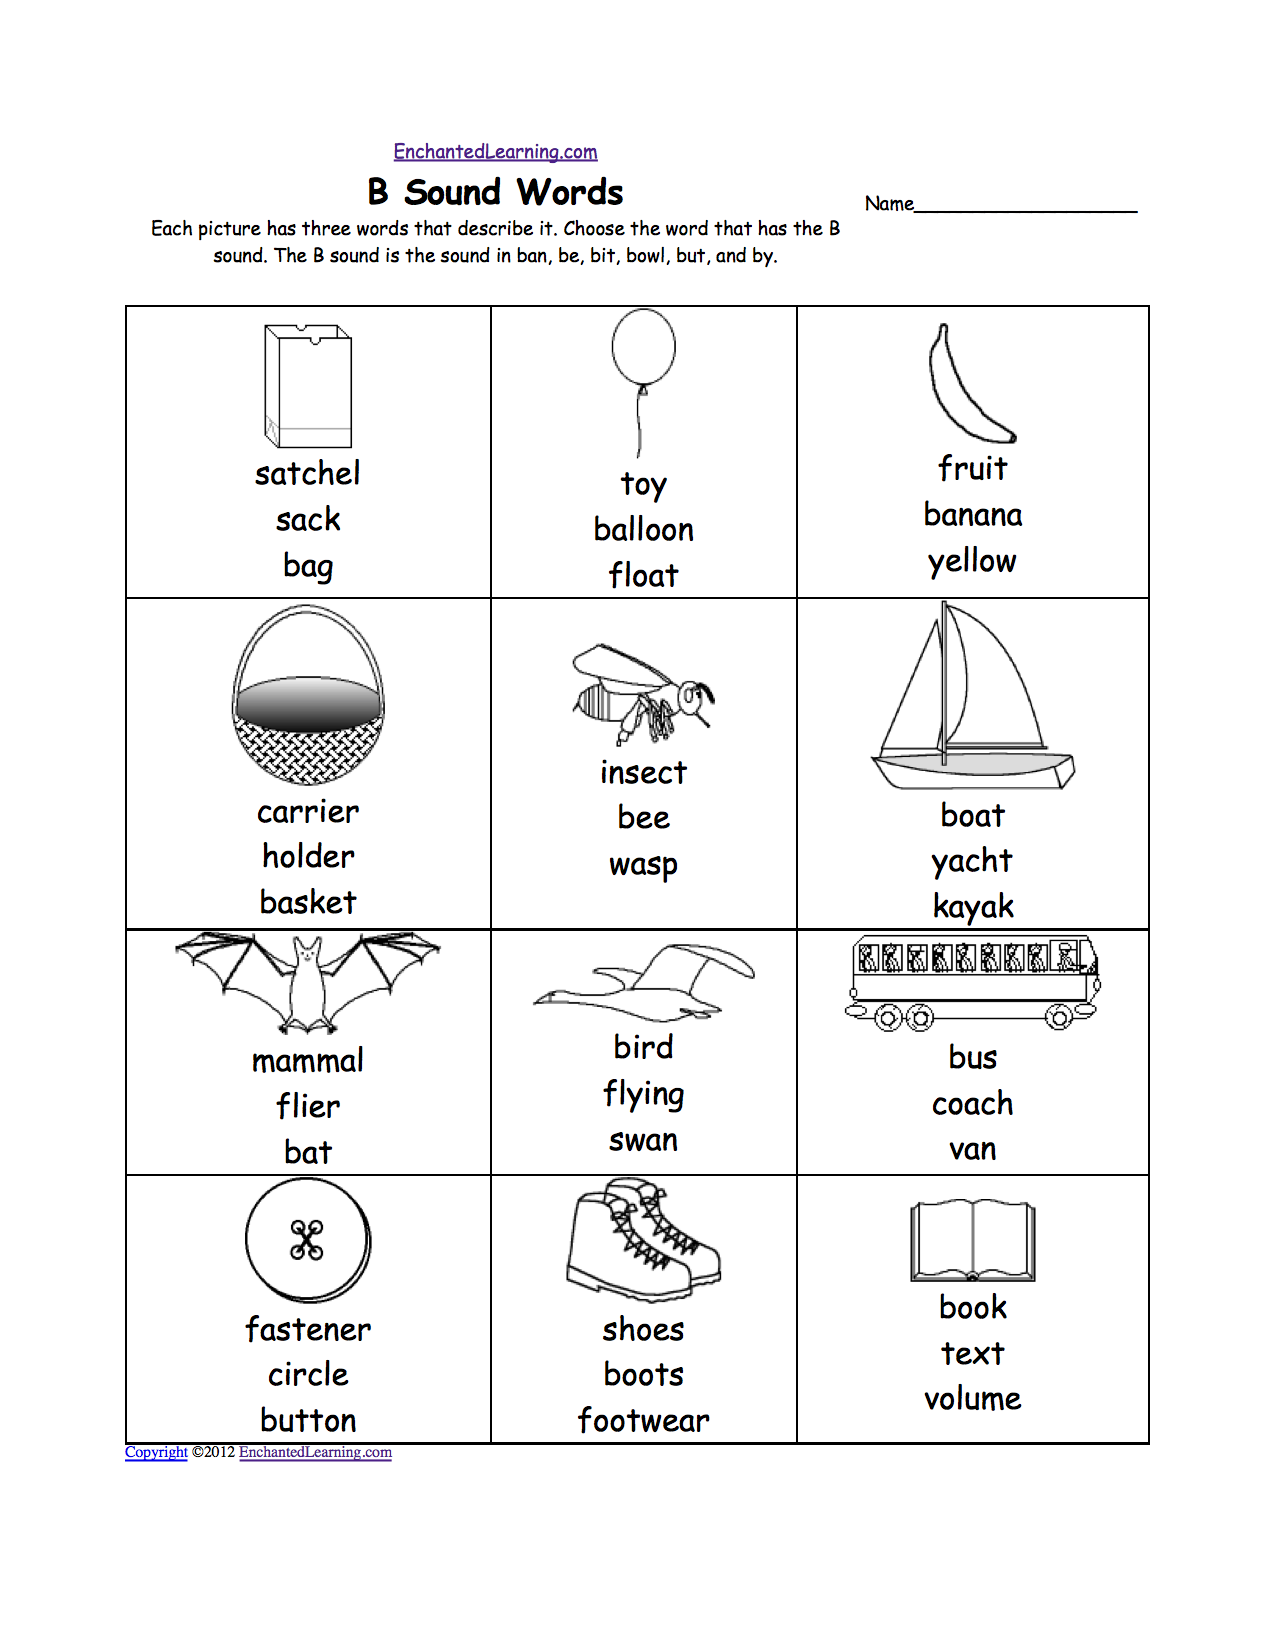 Aldiablosus  Outstanding Phonics Worksheets Multiple Choice Worksheets To Print  With Hot Quotbquot Sound Phonics Worksheet Multiple Choice Each Picture Has Three Words That Describe It Choose The Word That Has A Quotbquot Sound The Quotbquot Sound Is The Sound  With Comely Cut And Paste Sentence Worksheets Also Division With Remainders Worksheet Th Grade In Addition Tangrams Worksheet And Water Cycle Worksheets Rd Grade As Well As Metric Ruler Worksheet Additionally Subtracting  Digit Numbers Worksheets From Enchantedlearningcom With Aldiablosus  Hot Phonics Worksheets Multiple Choice Worksheets To Print  With Comely Quotbquot Sound Phonics Worksheet Multiple Choice Each Picture Has Three Words That Describe It Choose The Word That Has A Quotbquot Sound The Quotbquot Sound Is The Sound  And Outstanding Cut And Paste Sentence Worksheets Also Division With Remainders Worksheet Th Grade In Addition Tangrams Worksheet From Enchantedlearningcom